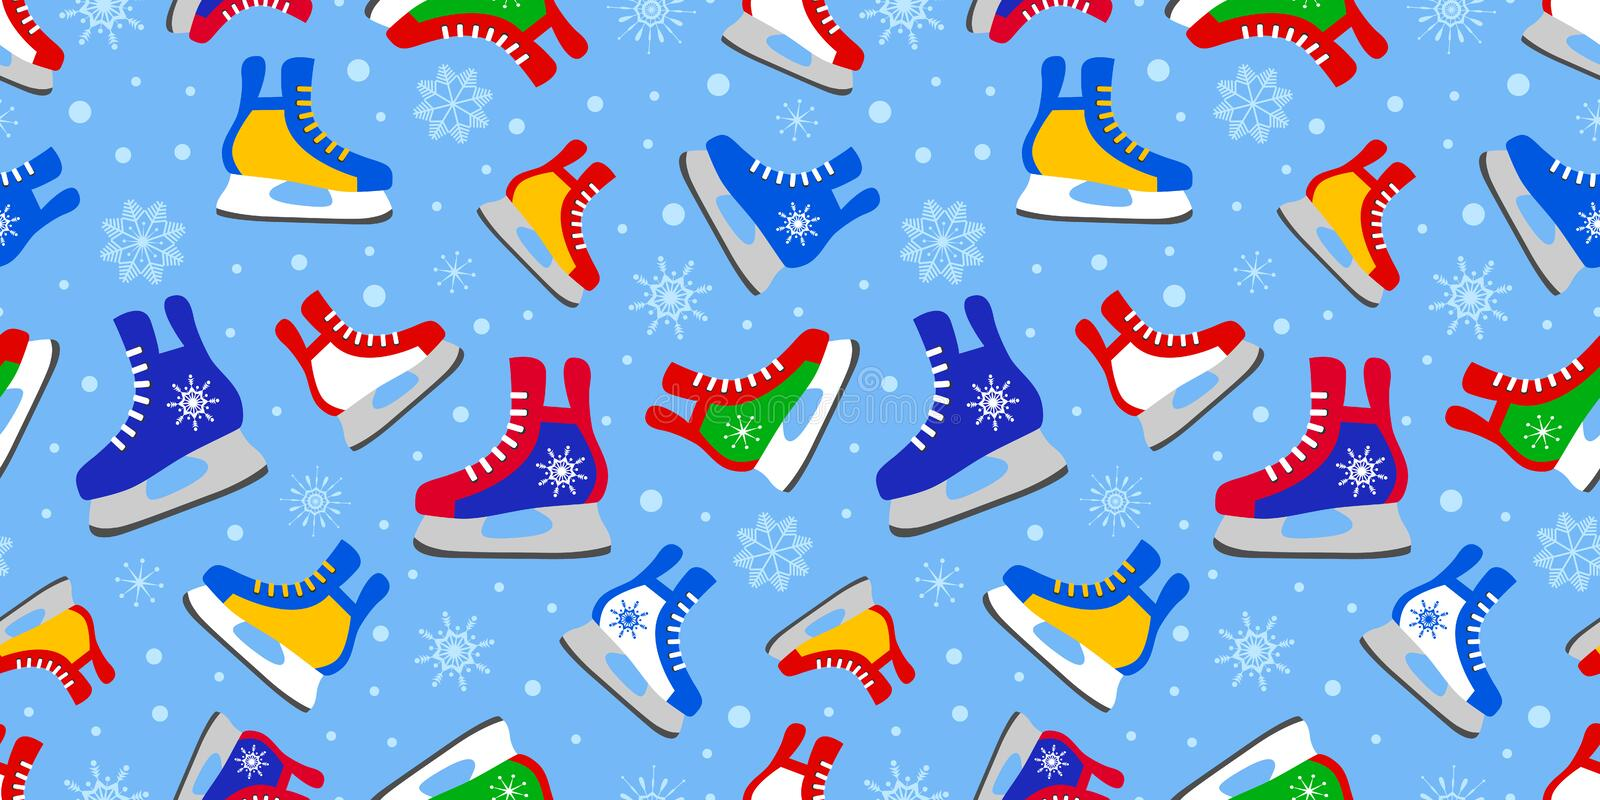 Colorful ice skates seamless pattern. Winter activitiy template wallpaper. Cute childish print. Sports vector illustration. Colore vector illustration